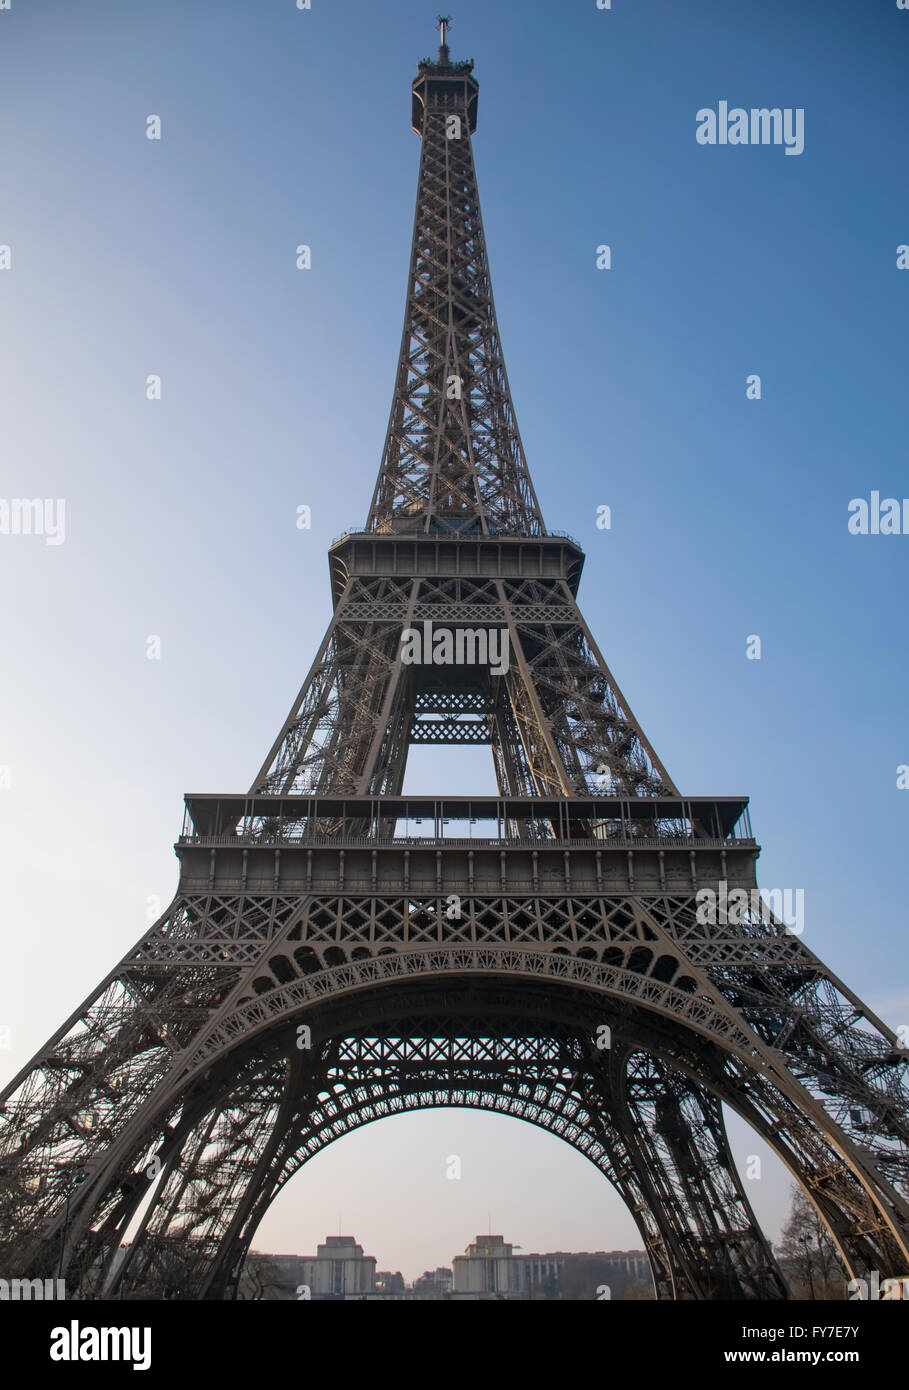 The Eiffel Tower from below - Stock Image